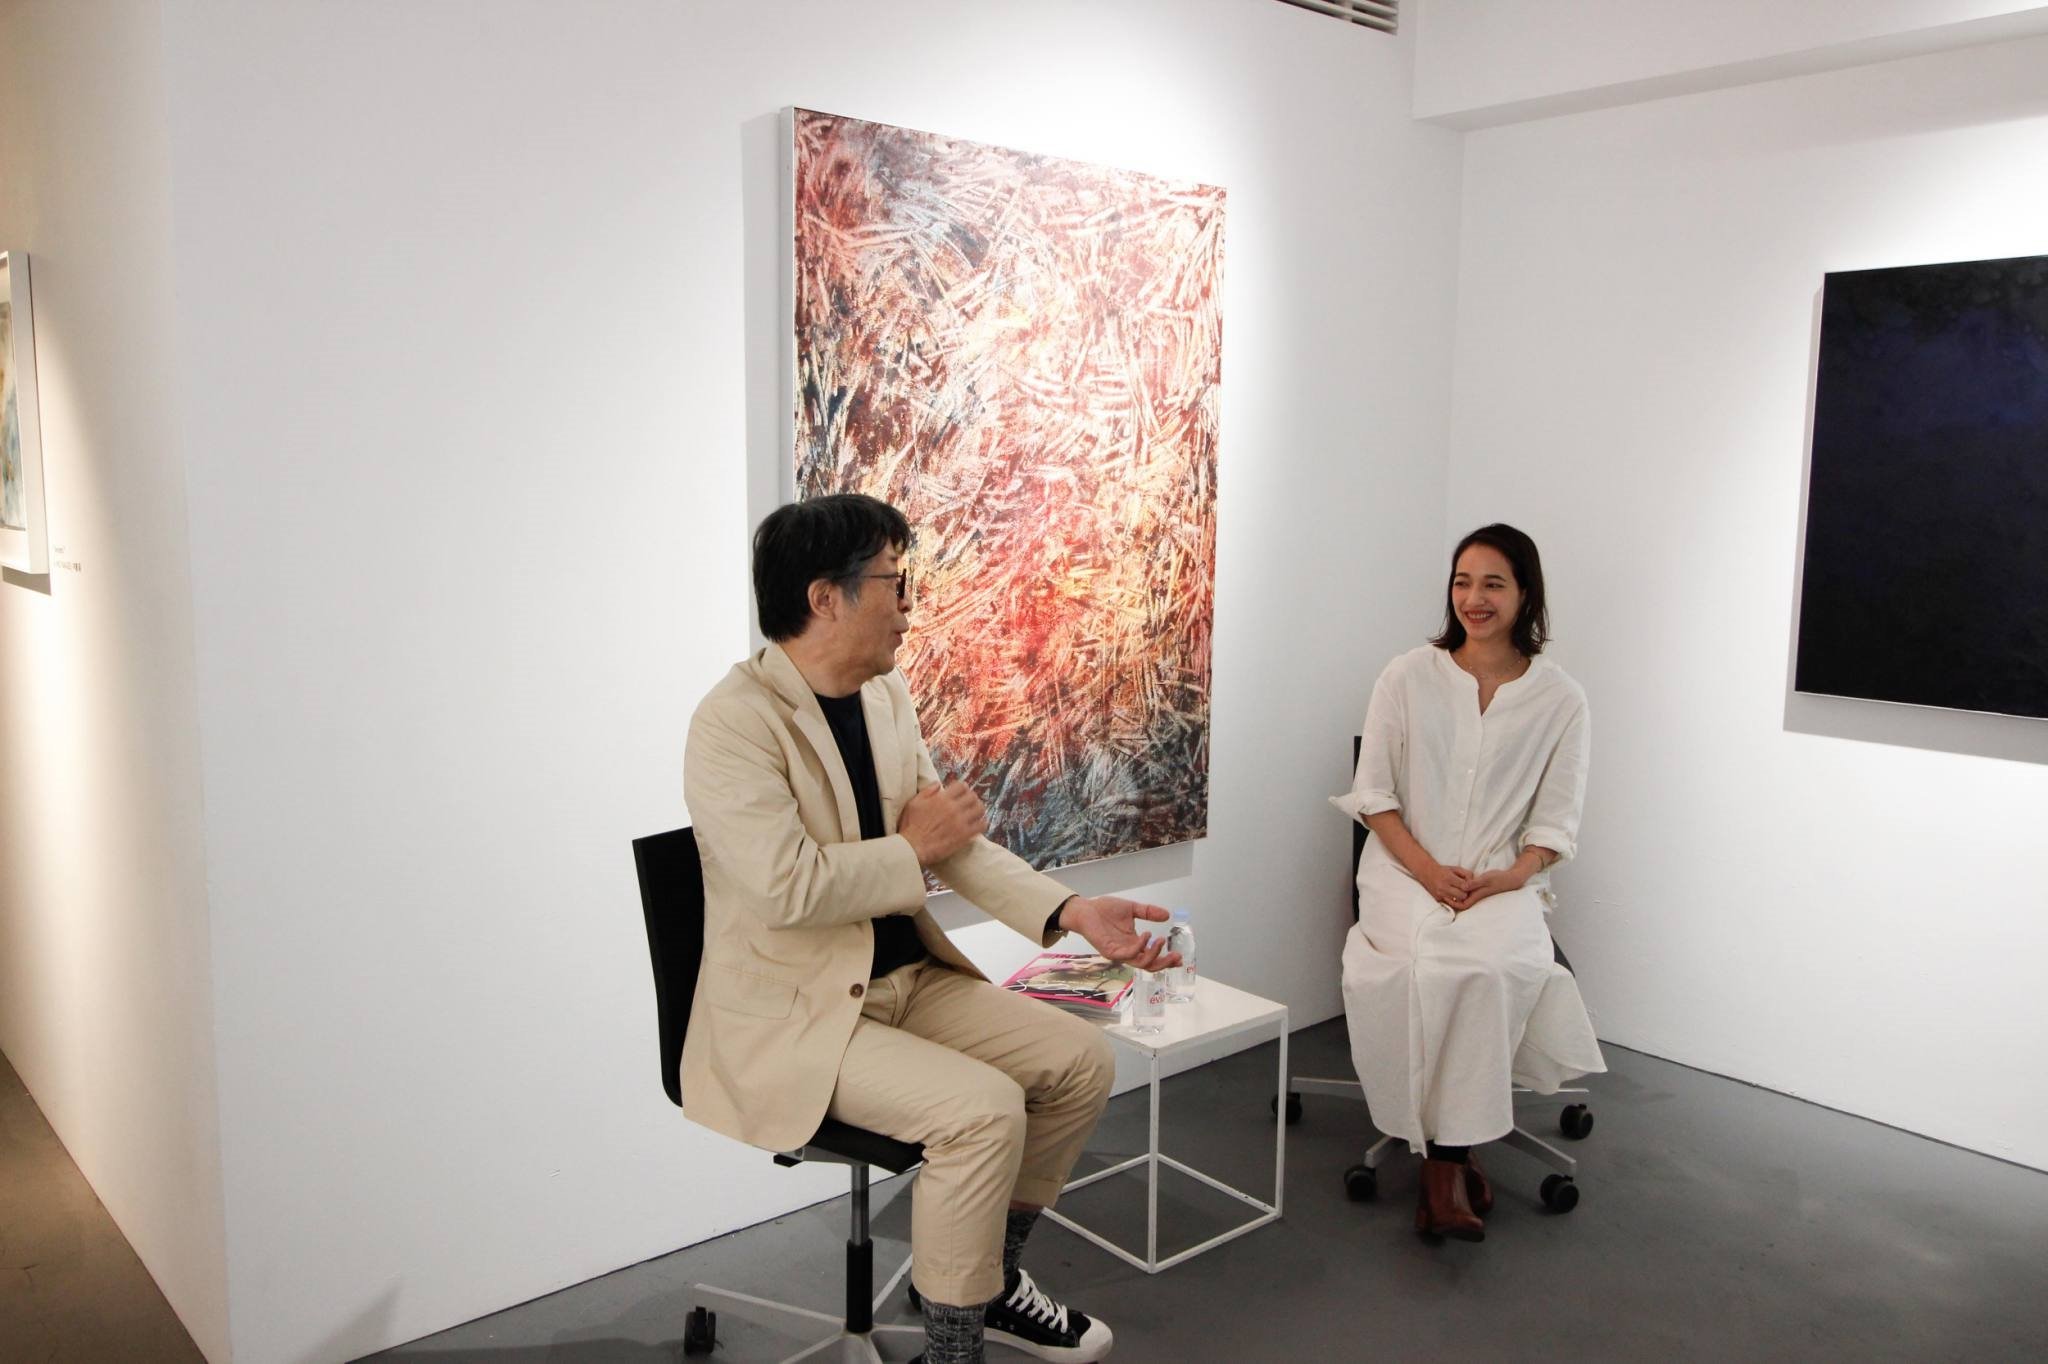 『Beyond』EXHIBITION & TALK SHOW  by MOE NAKASE